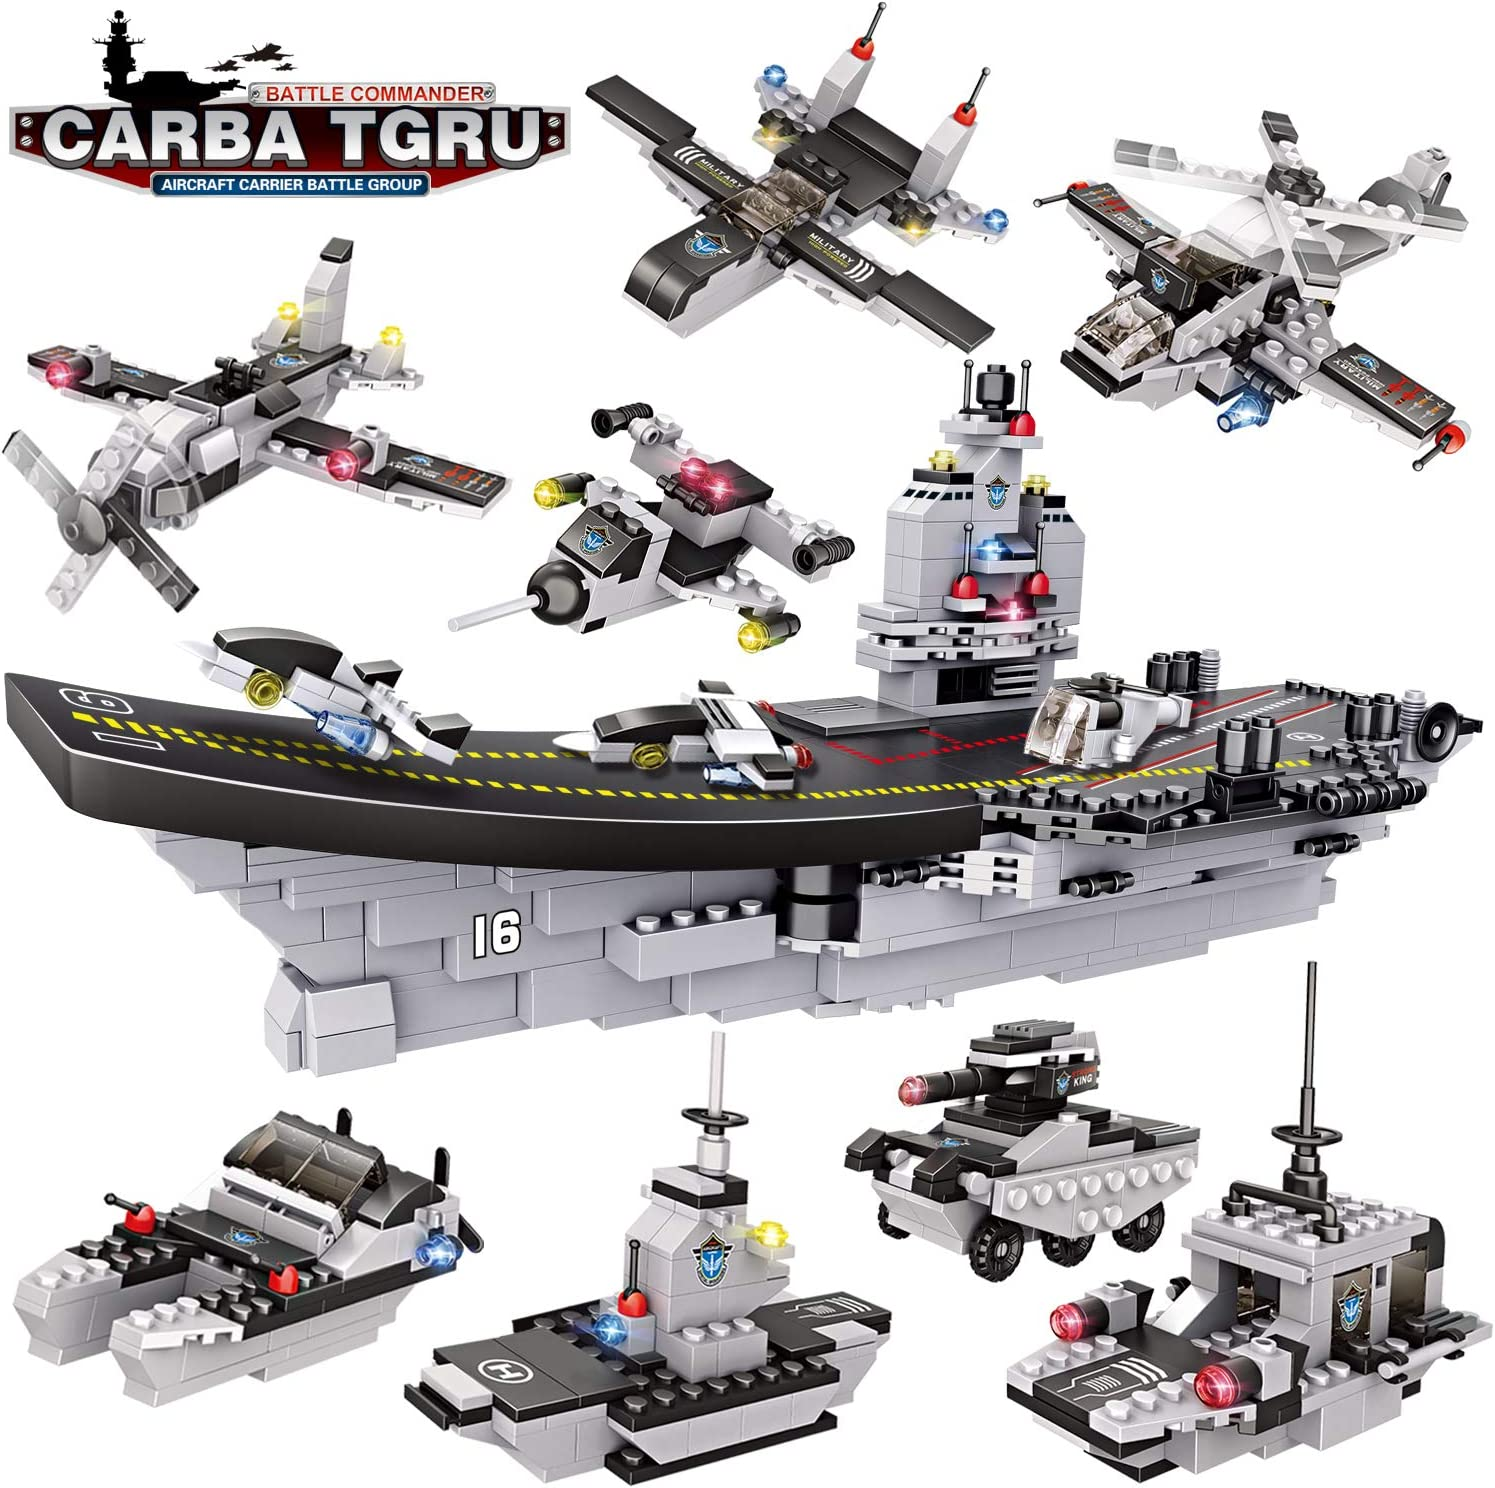 WishaLife City Police Giant Army Aircraft Carrier Battle Group Building Kit, Military Battleship Model Building Set with Solid Hull and Deck for Boys Girls 6-12 (1330 Pieces)